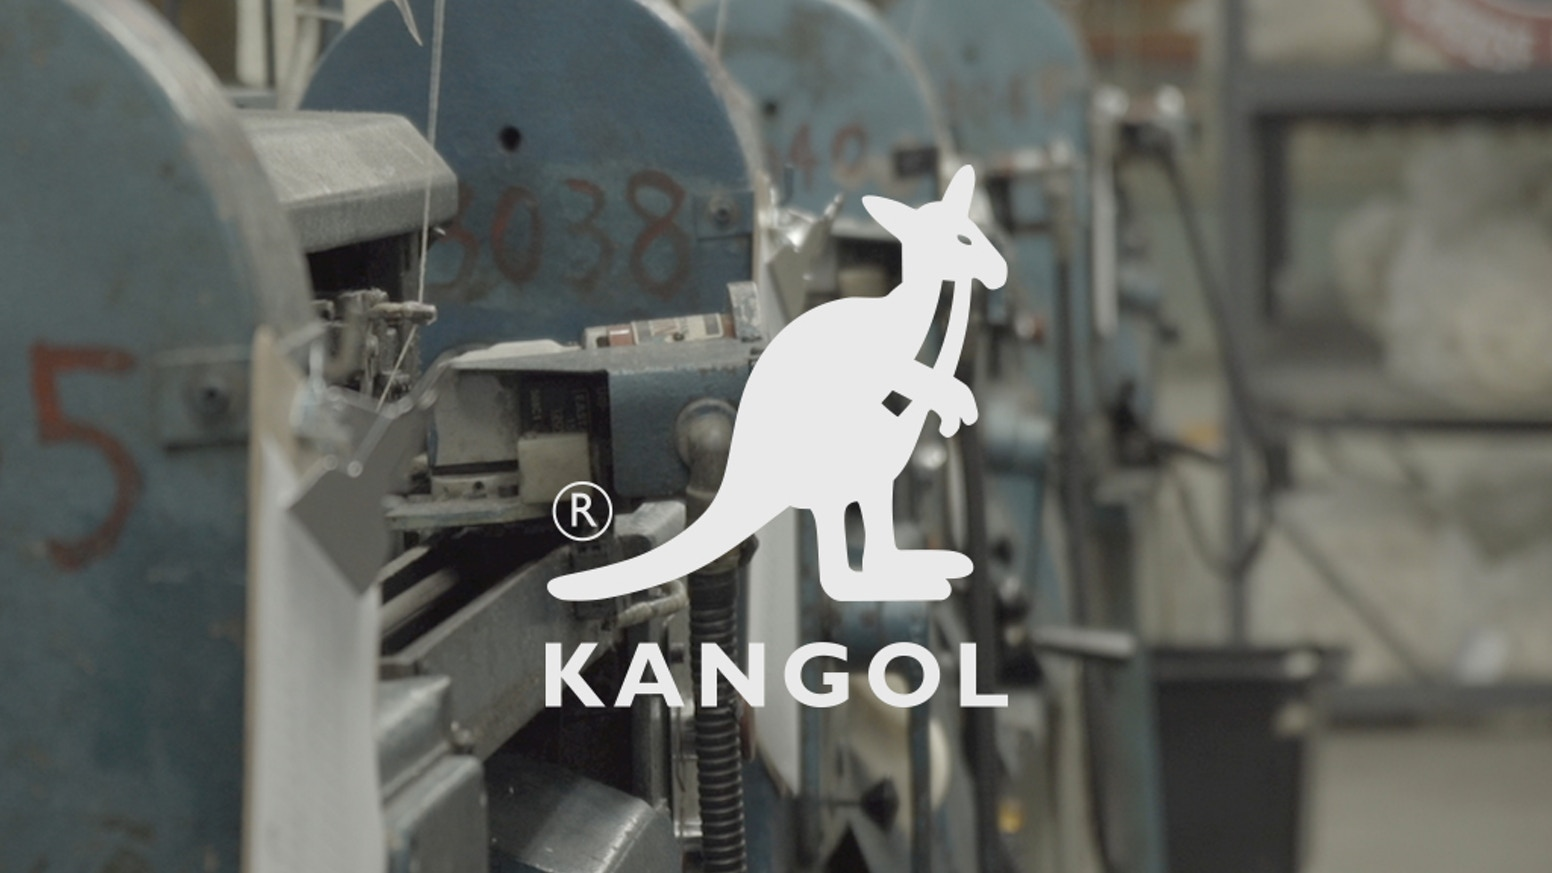 Kangol 504  Bring Jobs To America With Bollman Hat Company by ... ae9e0bad4e9